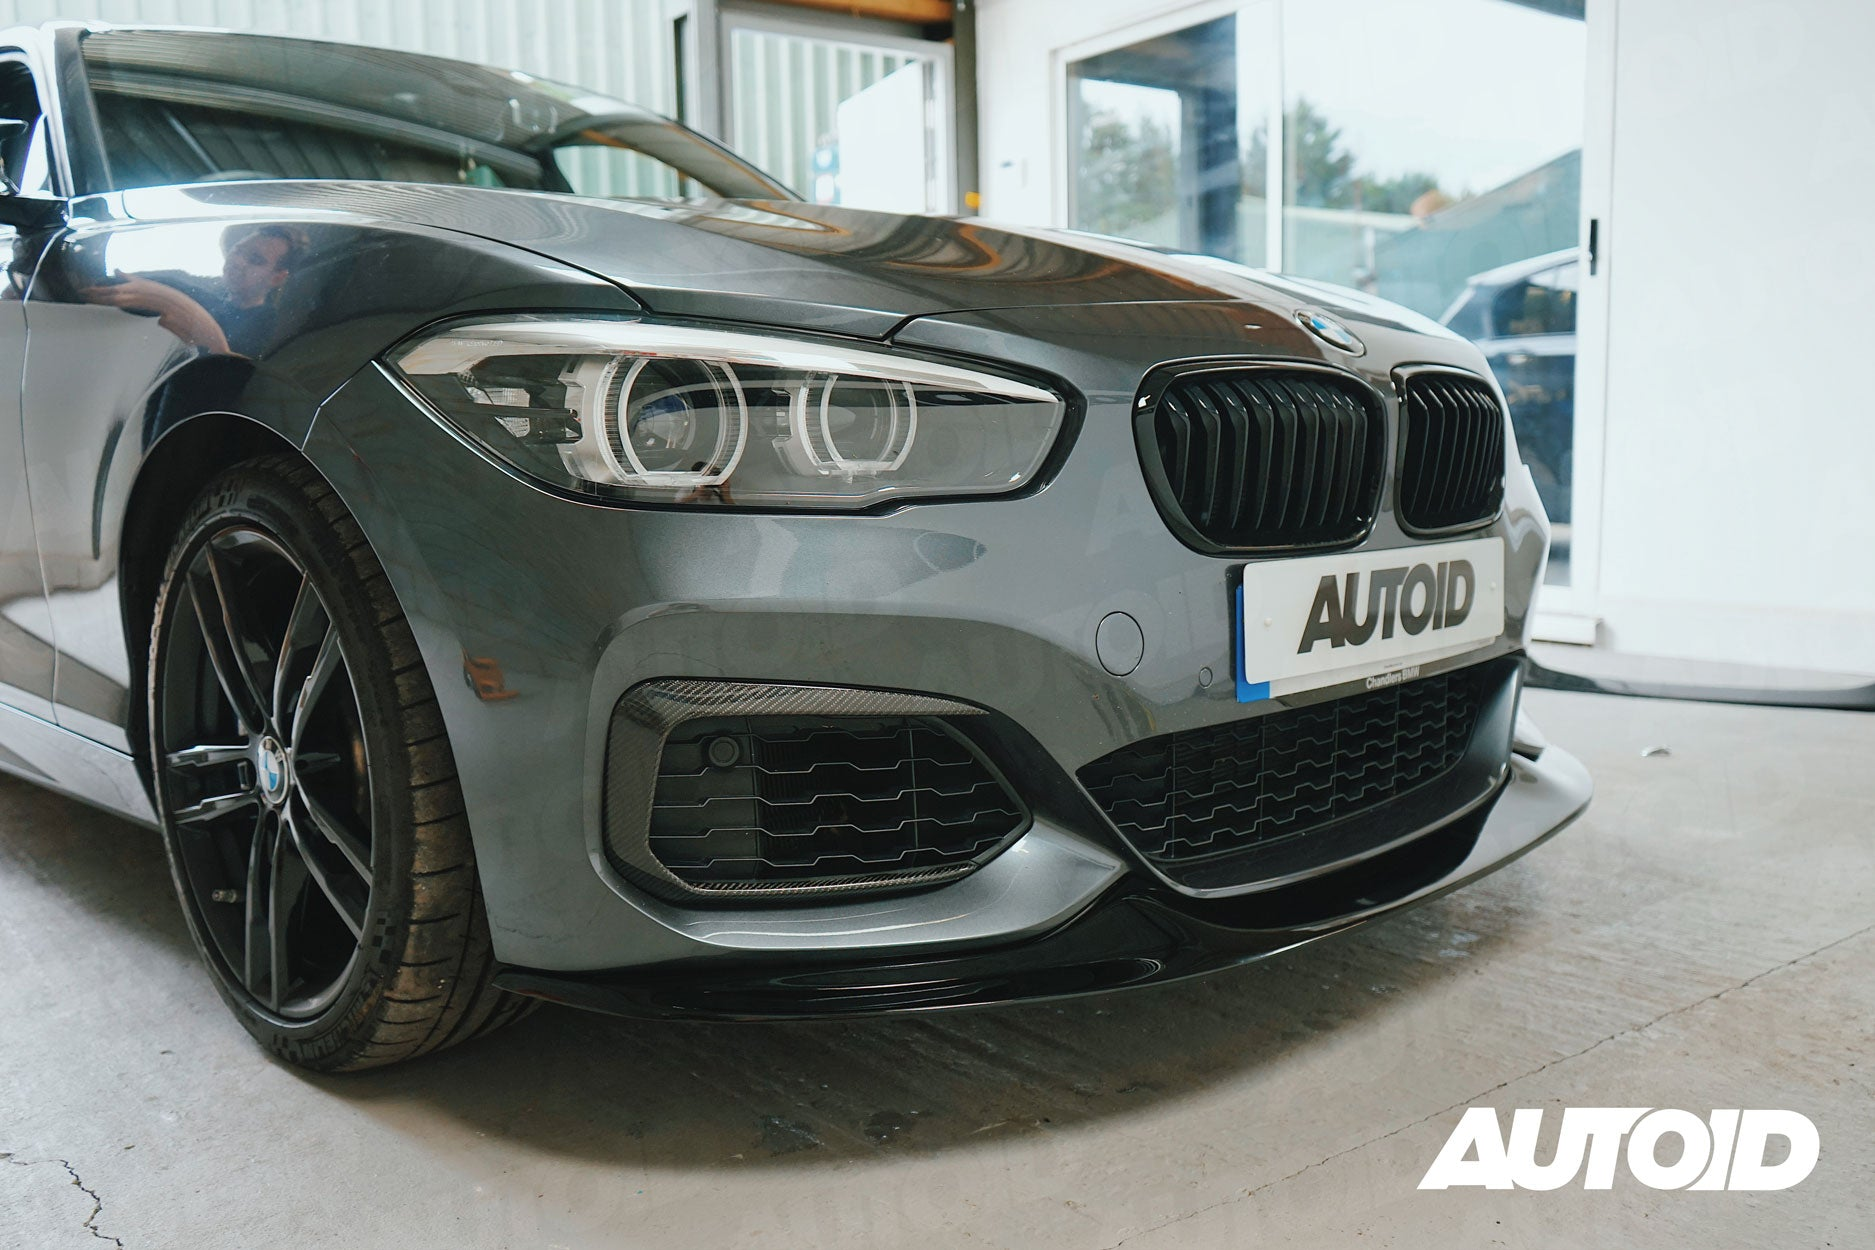 AUTOID Gloss Black GTS Front Splitter for BMW 1 Series (LCI, 2015+)